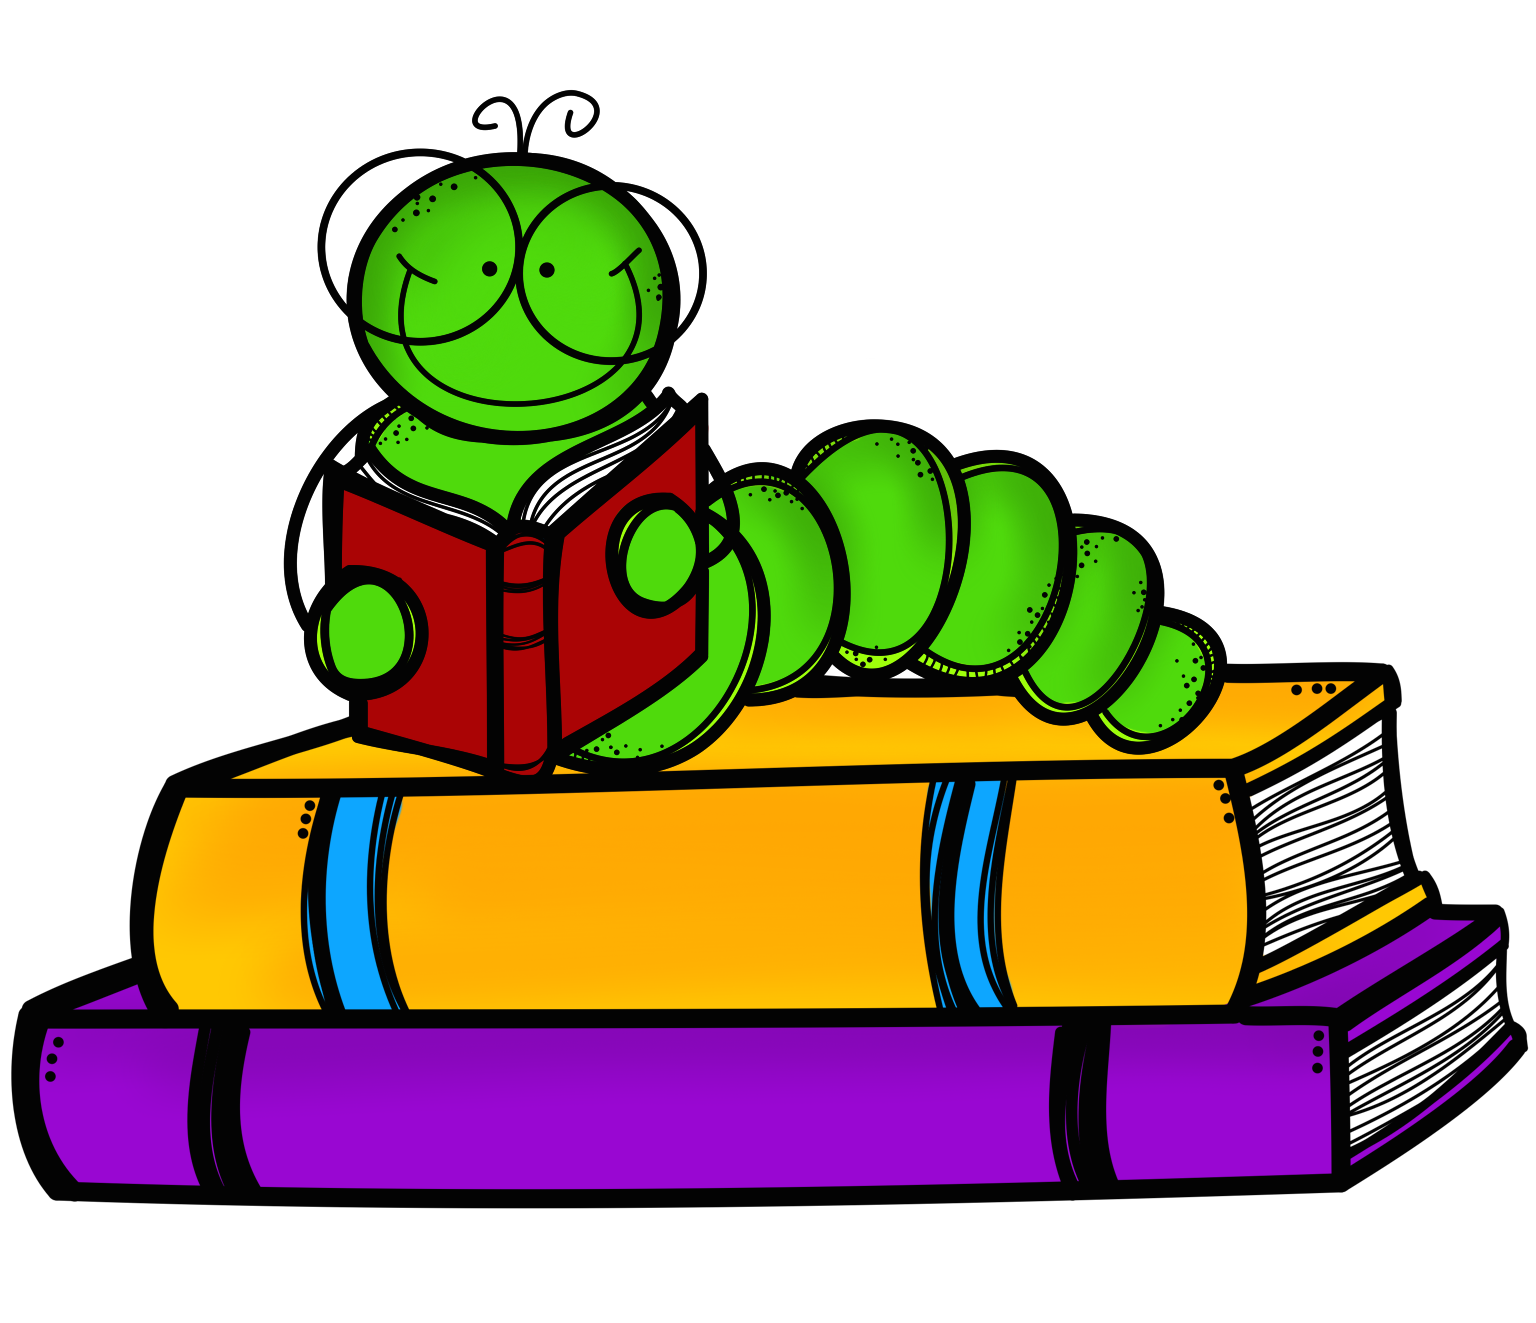 Free bookworm cliparts download. Organization clipart faculty meeting